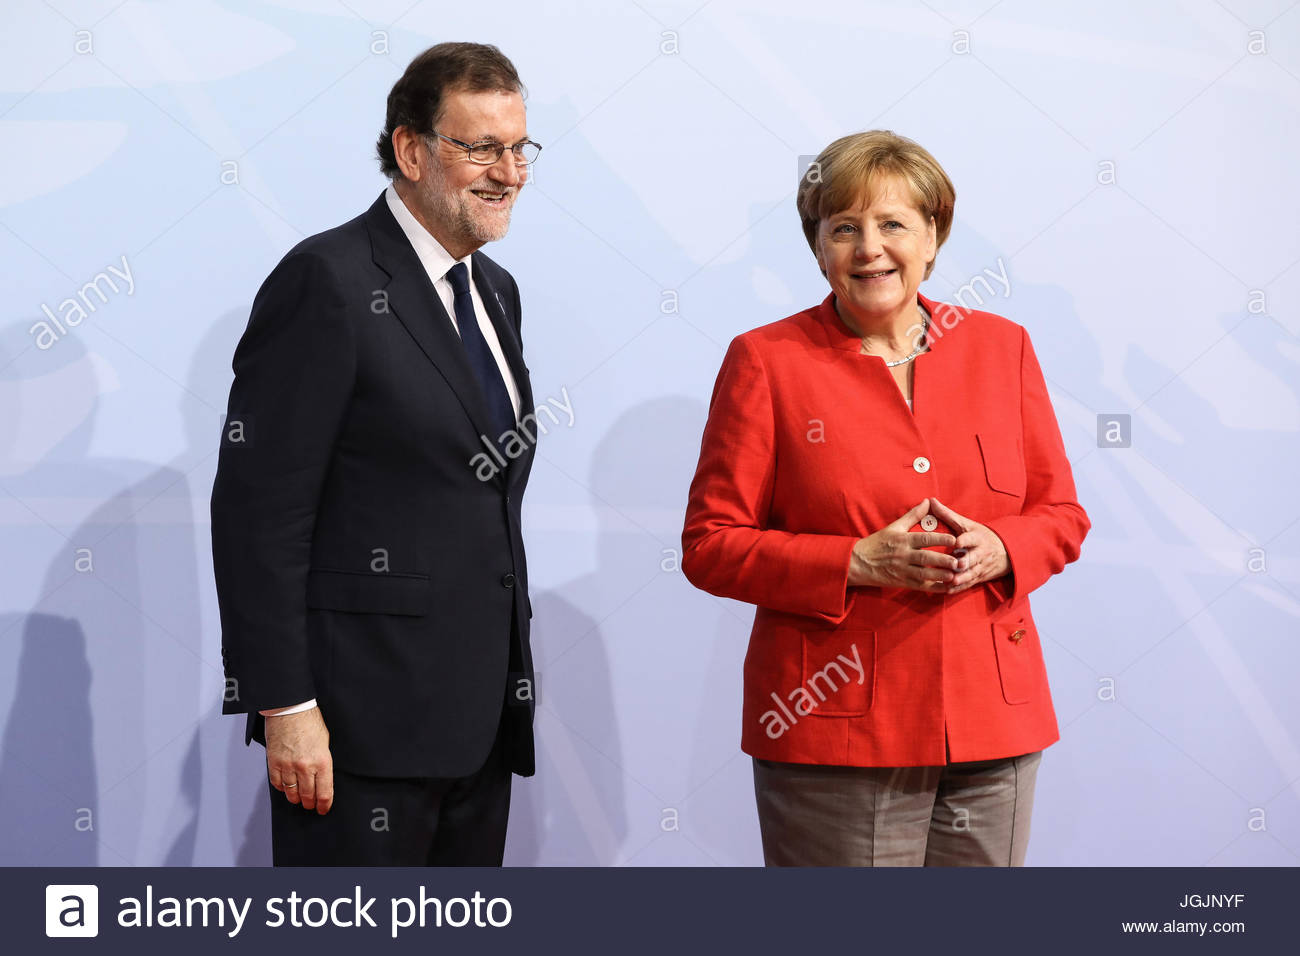 Hamburg, Germany. 7th Jul, 2017. Mariano Rajoy, prime minister of Spain welcomes by German chancellor Angela Merkel - Stock Image